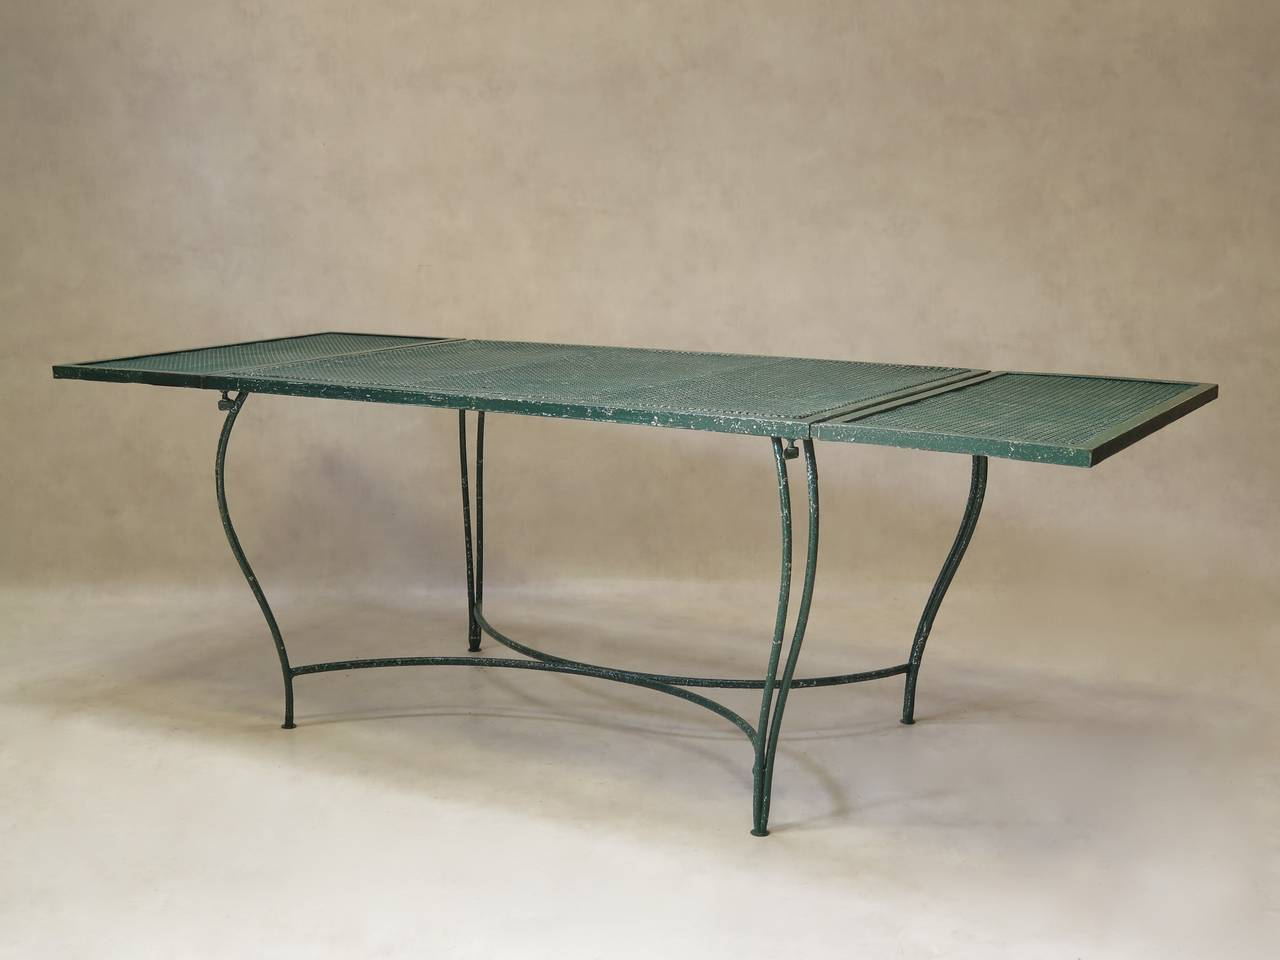 Wrought Iron Garden Dining Table France 1950s For Sale